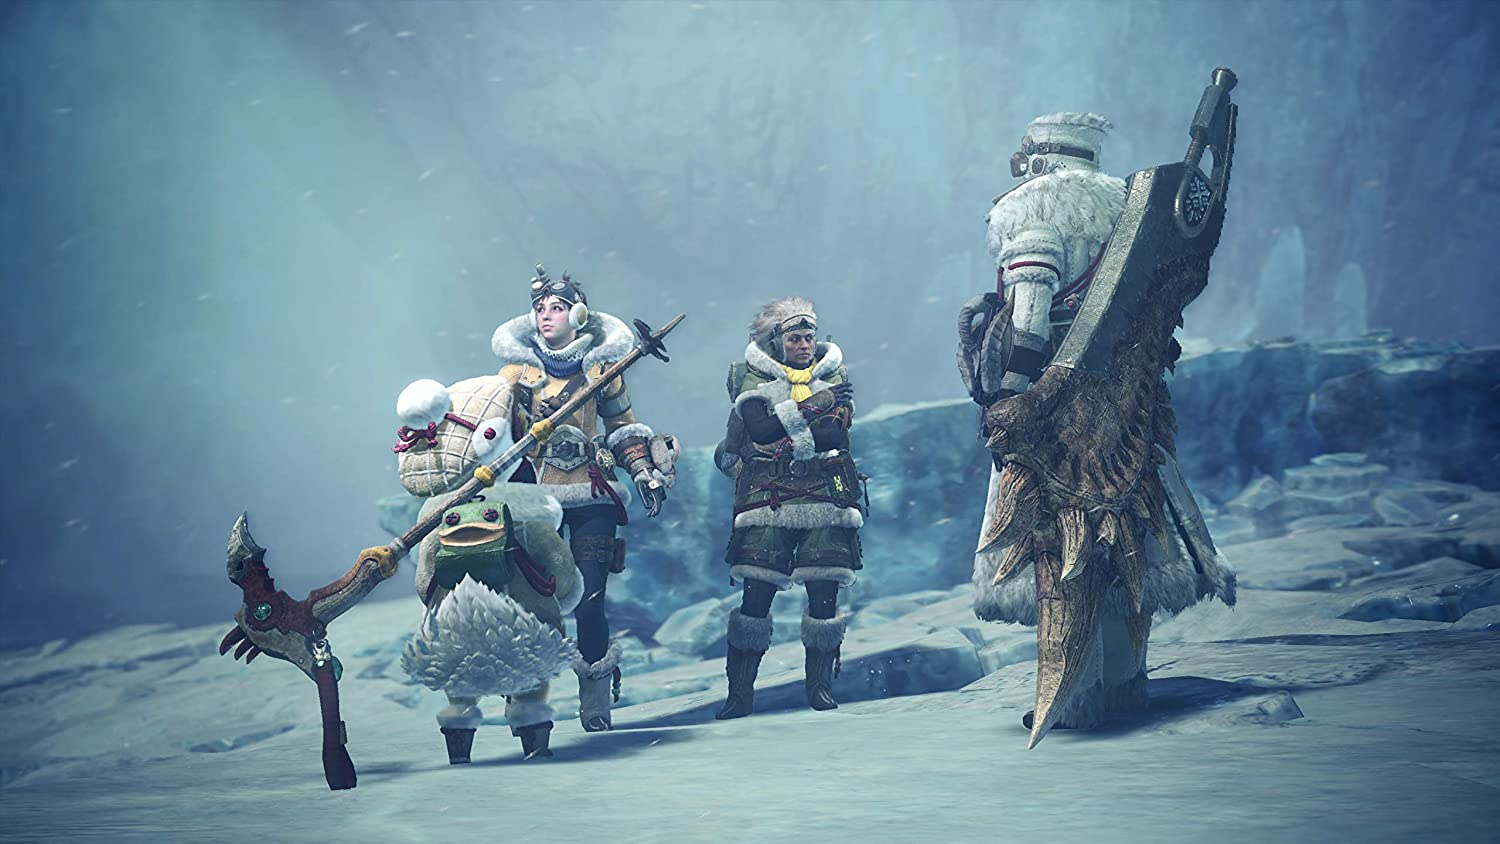 Mhw Find A Squad